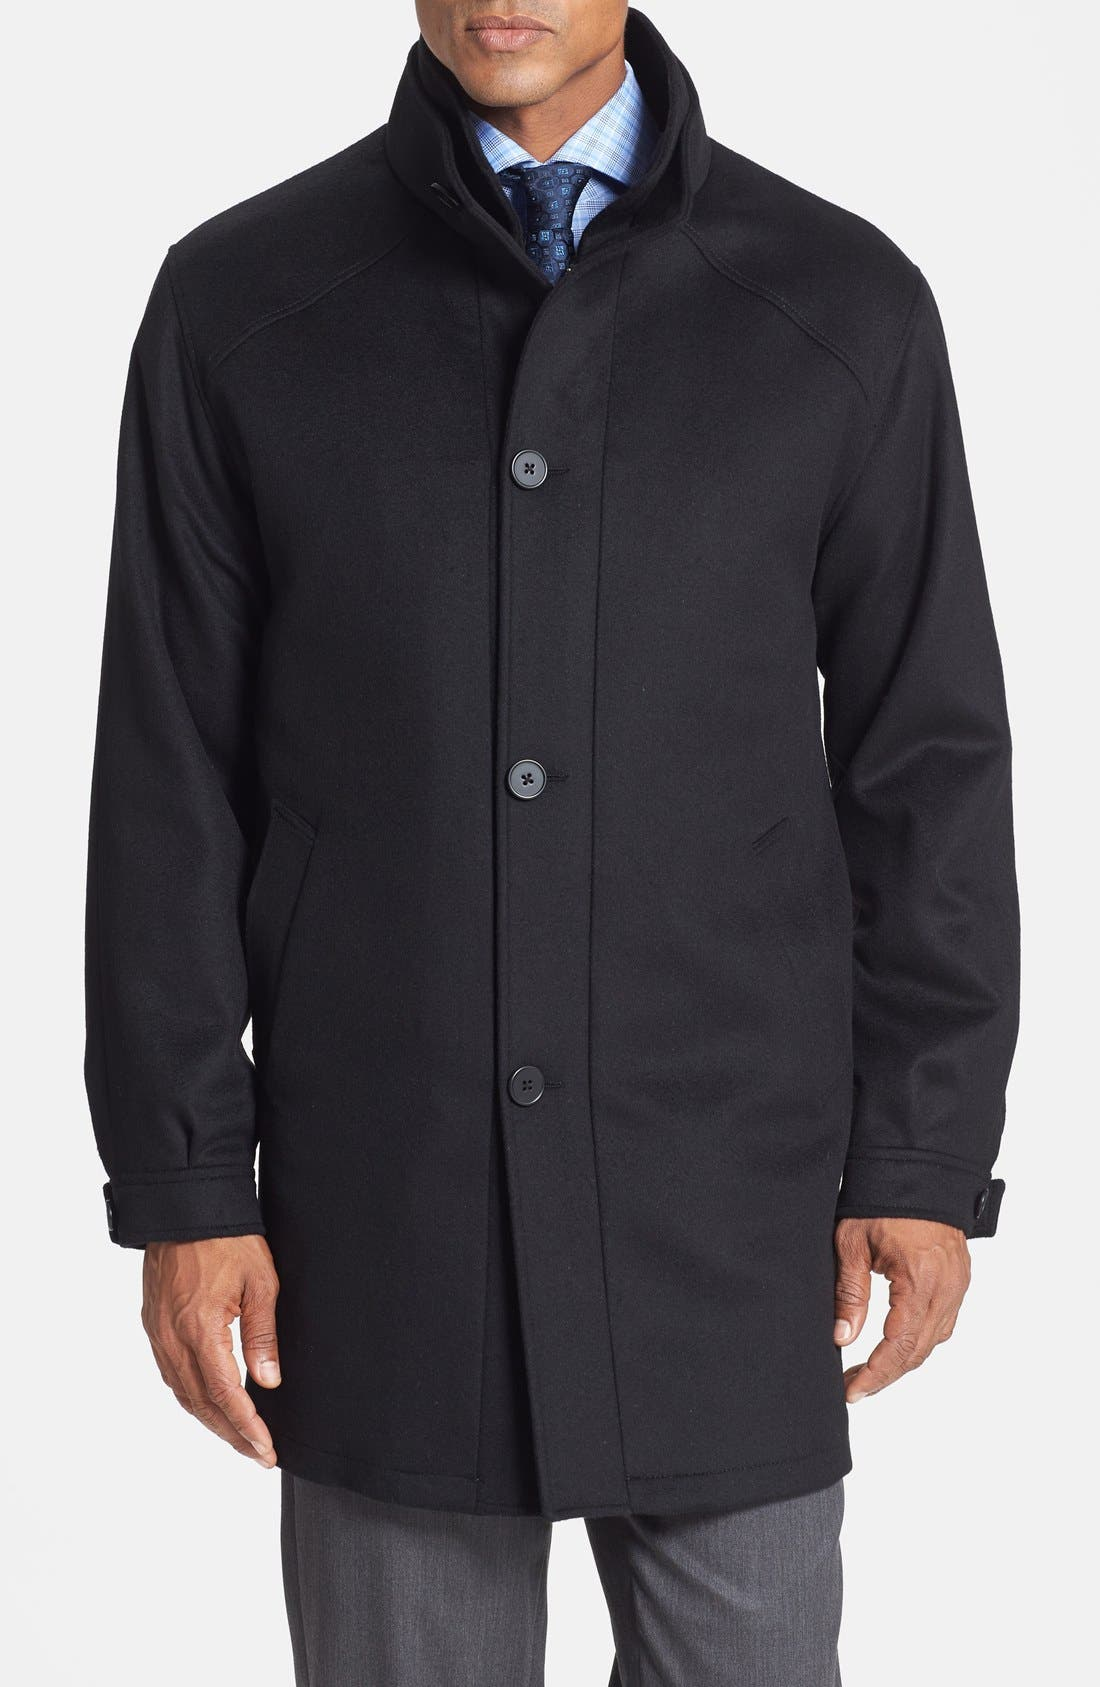 Alternate Image 1 Selected - Cardinal of Canada Classic Fit Wool Blend Topcoat